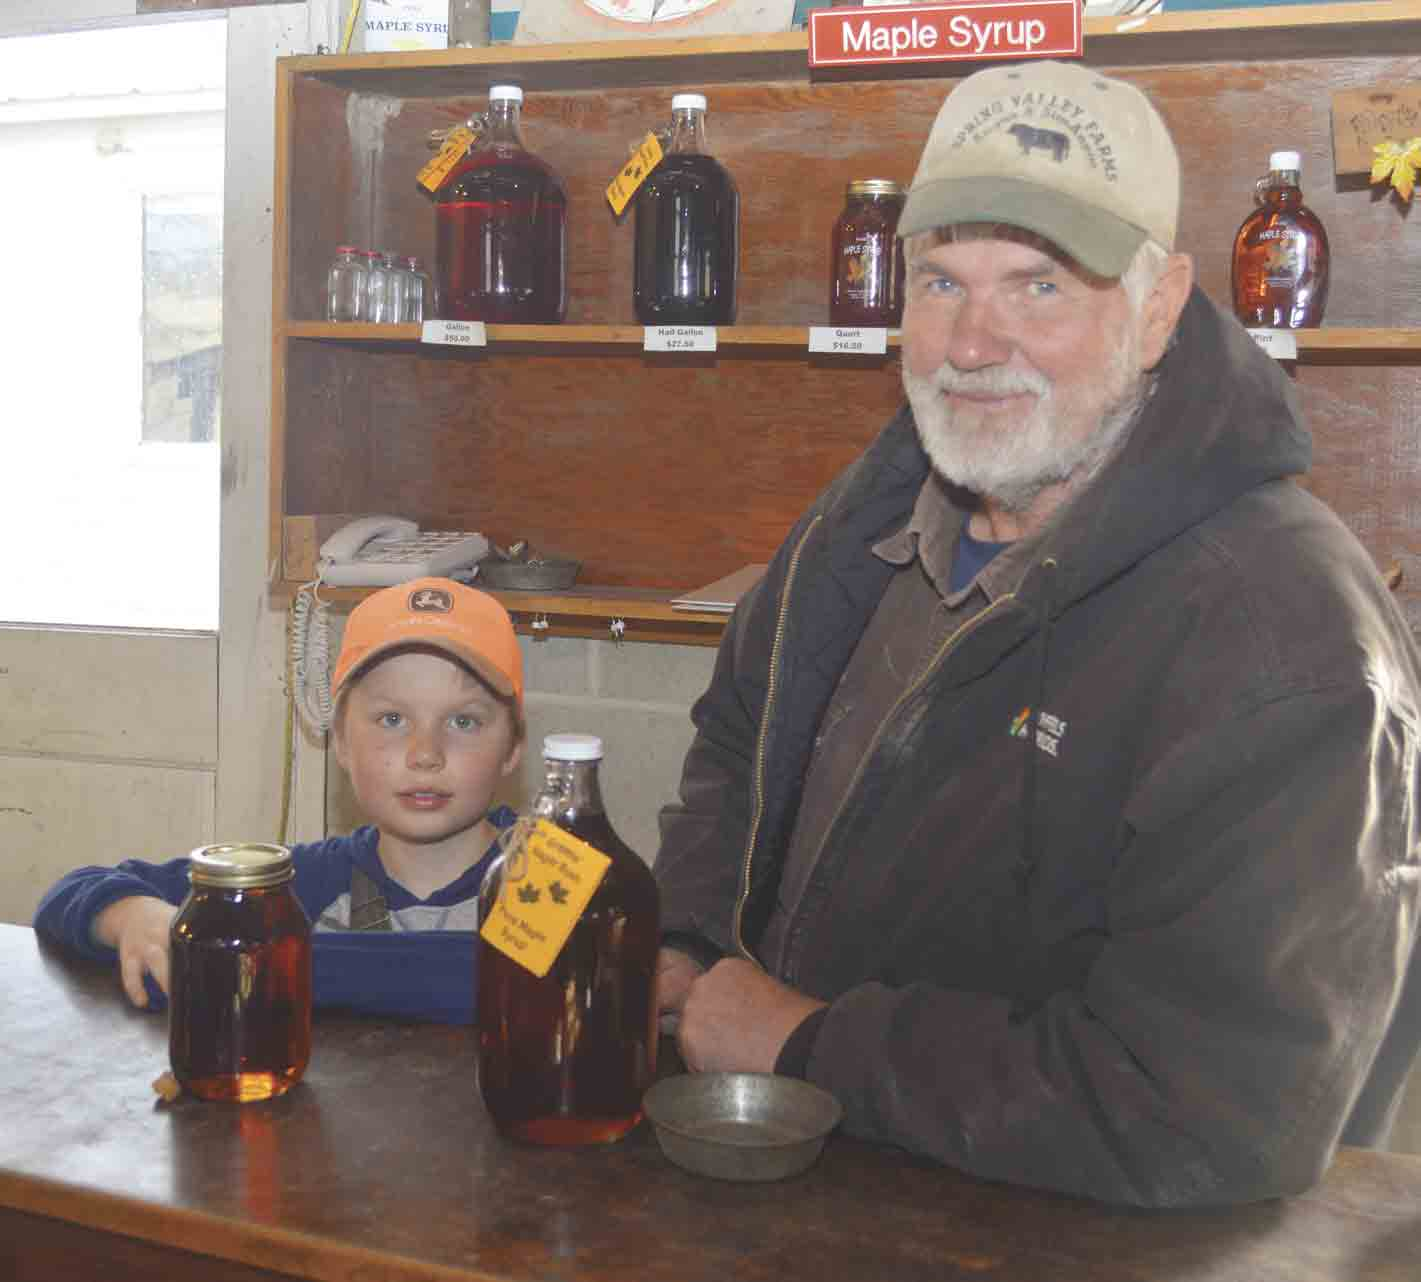 Inside the evaporator house, Dale Green and grandson John Melcher work on another batch of Sugarbush maple syrup, a nearly 170-year-old family tradition that was brought to rural Castalia by Dale's great-great-grandfather in 1851. John is the seventh generation of the family to...